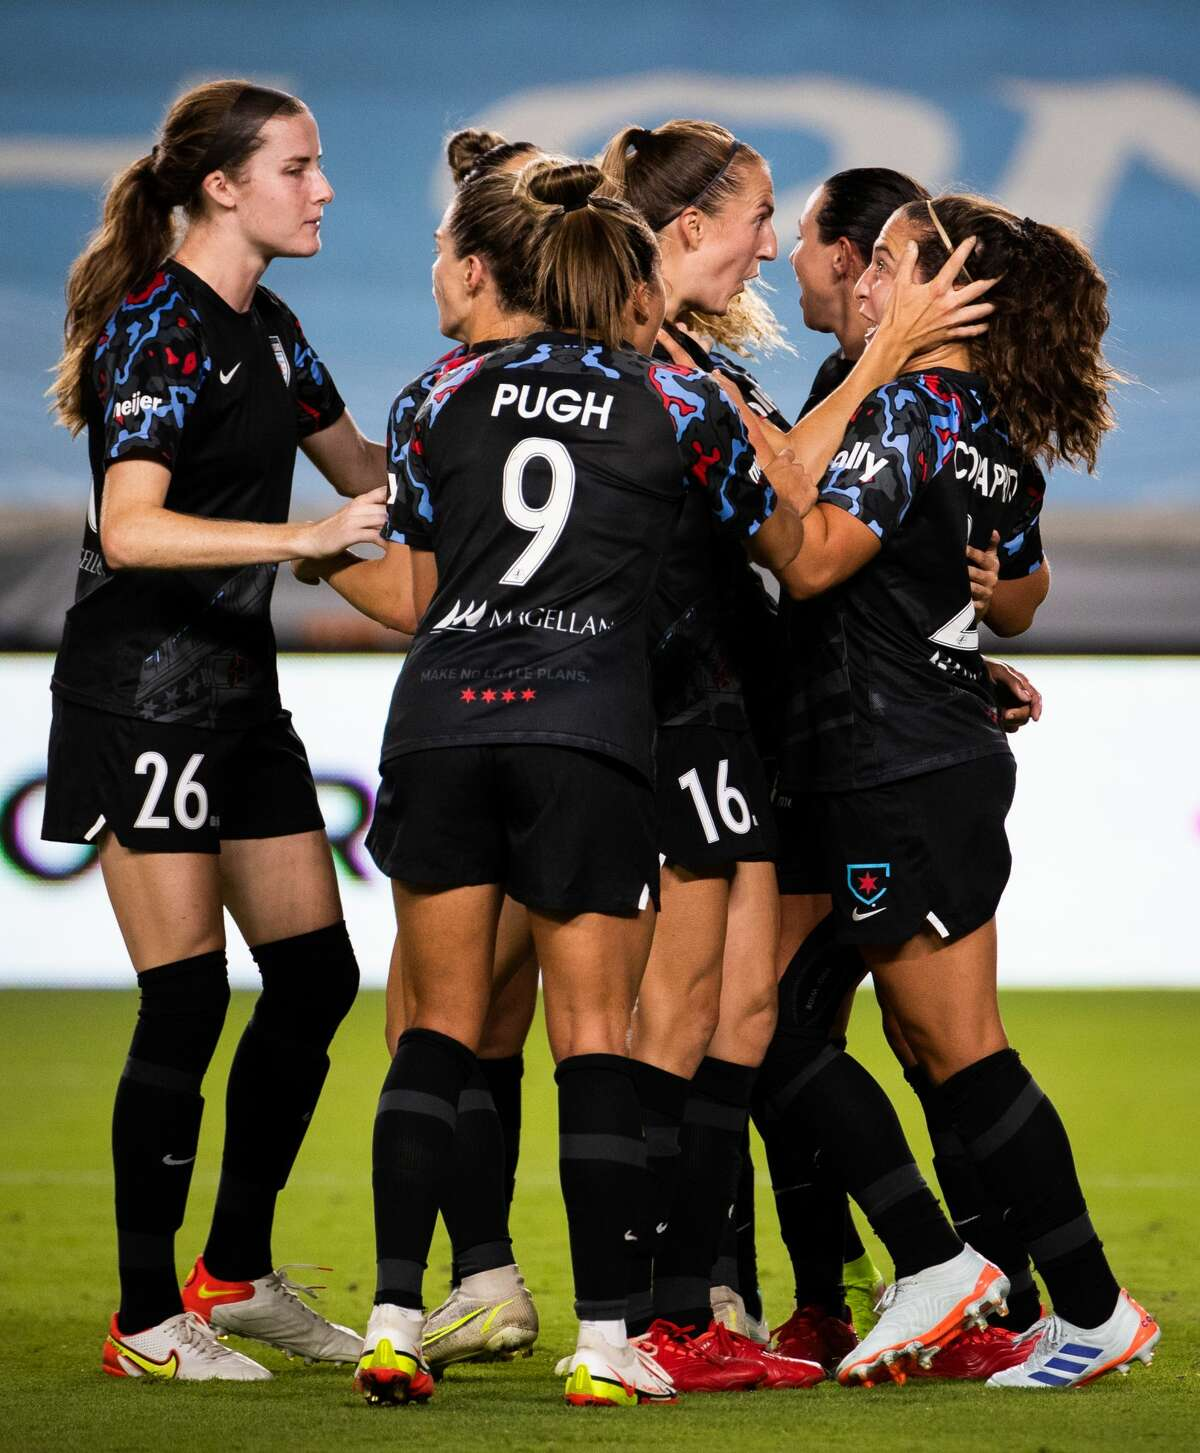 Chicago Red Stars celebrate after scoring a goal against the Houston Dash during the second half of the game at BBVA Stadium, Friday, Sept. 10, 2021, in Houston. The game ended in a tie 1-1.